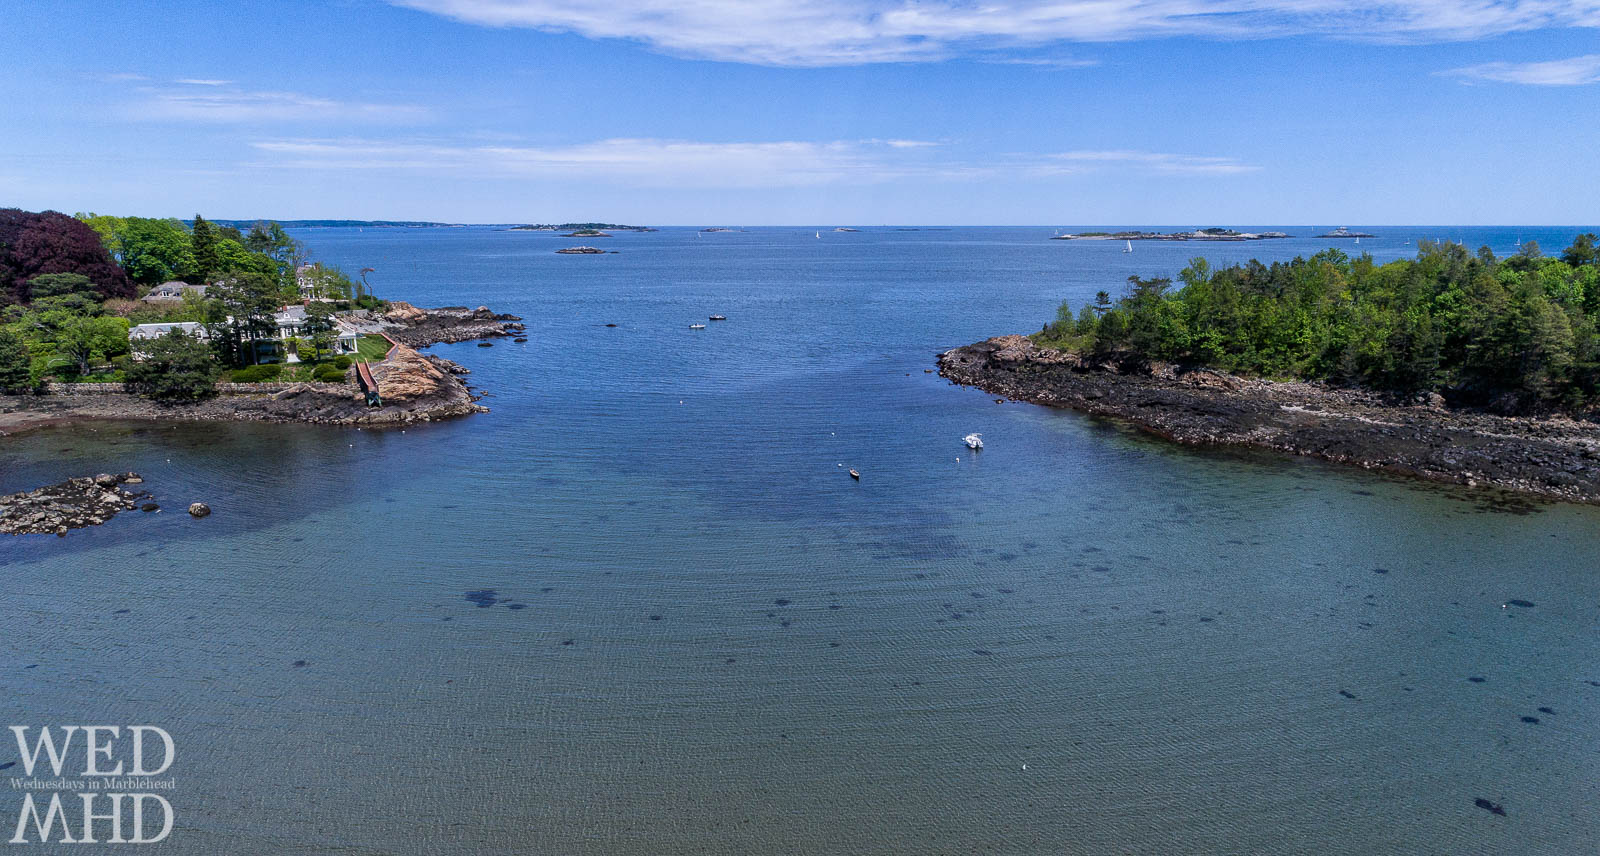 An aerial view of Doliber Cove illustrates the shallow water, Brown's Island and a uniquely shaped Dr Seuss tree